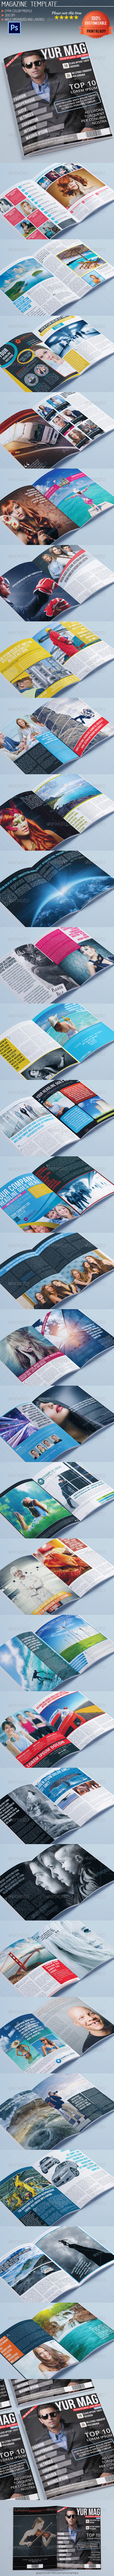 60 Pages Magazine Template